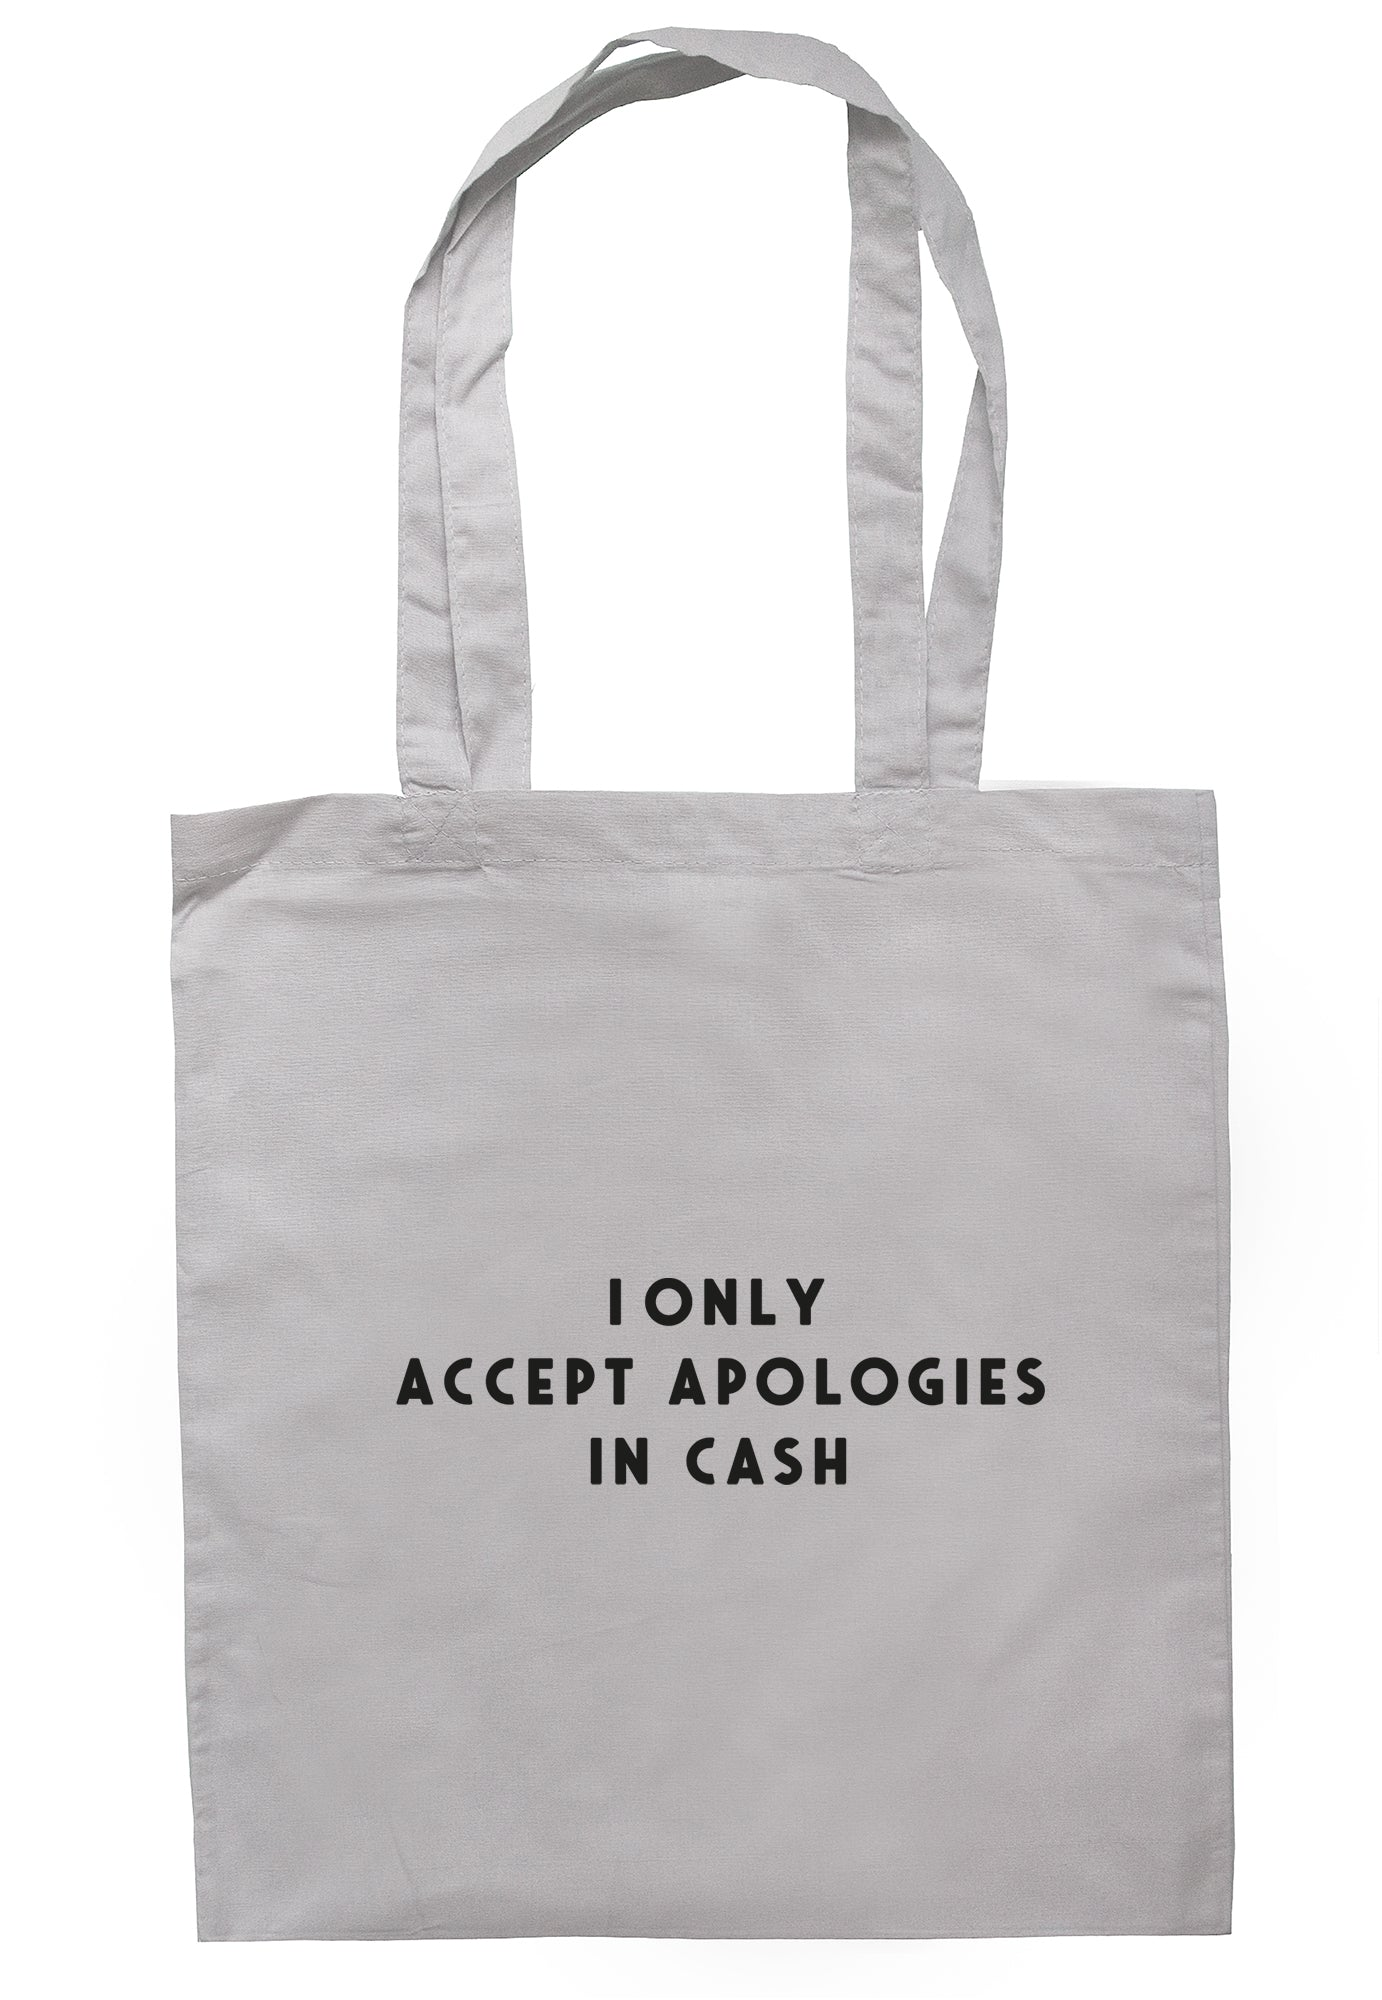 I Only Accept Apologies In Cash Tote Bag S1134 - Illustrated Identity Ltd.